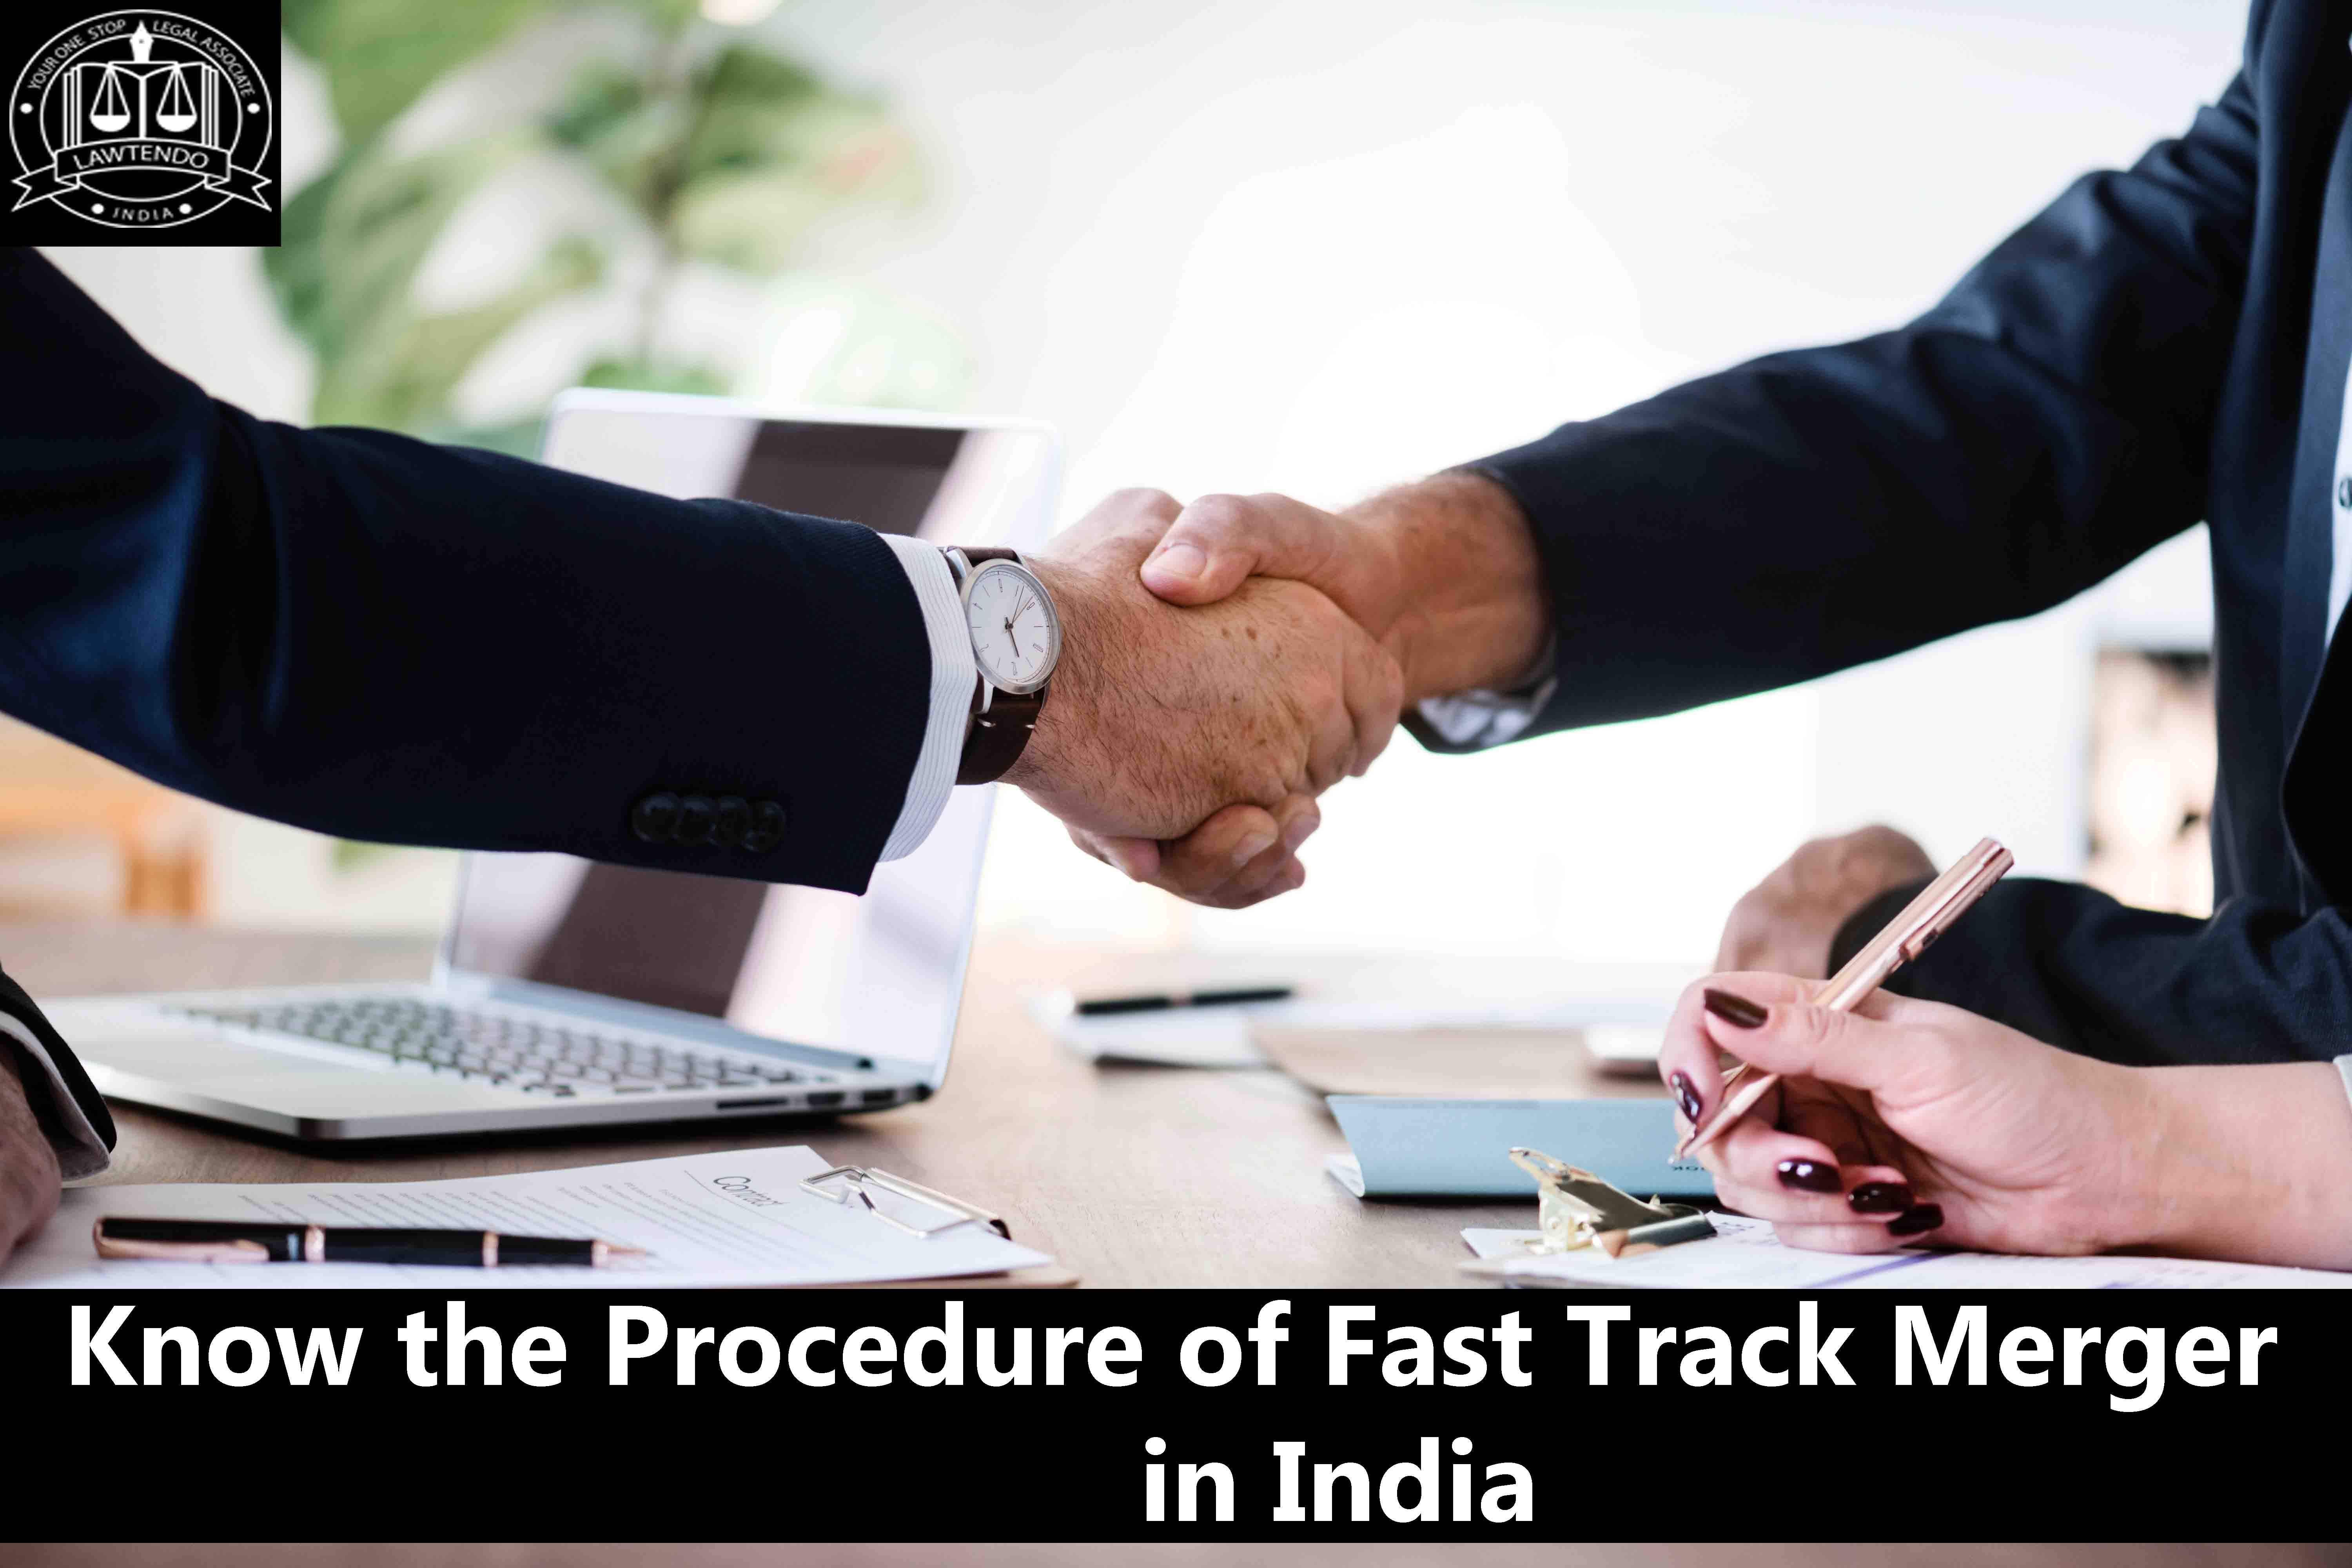 Know the Procedure of Fast Track Merger in India